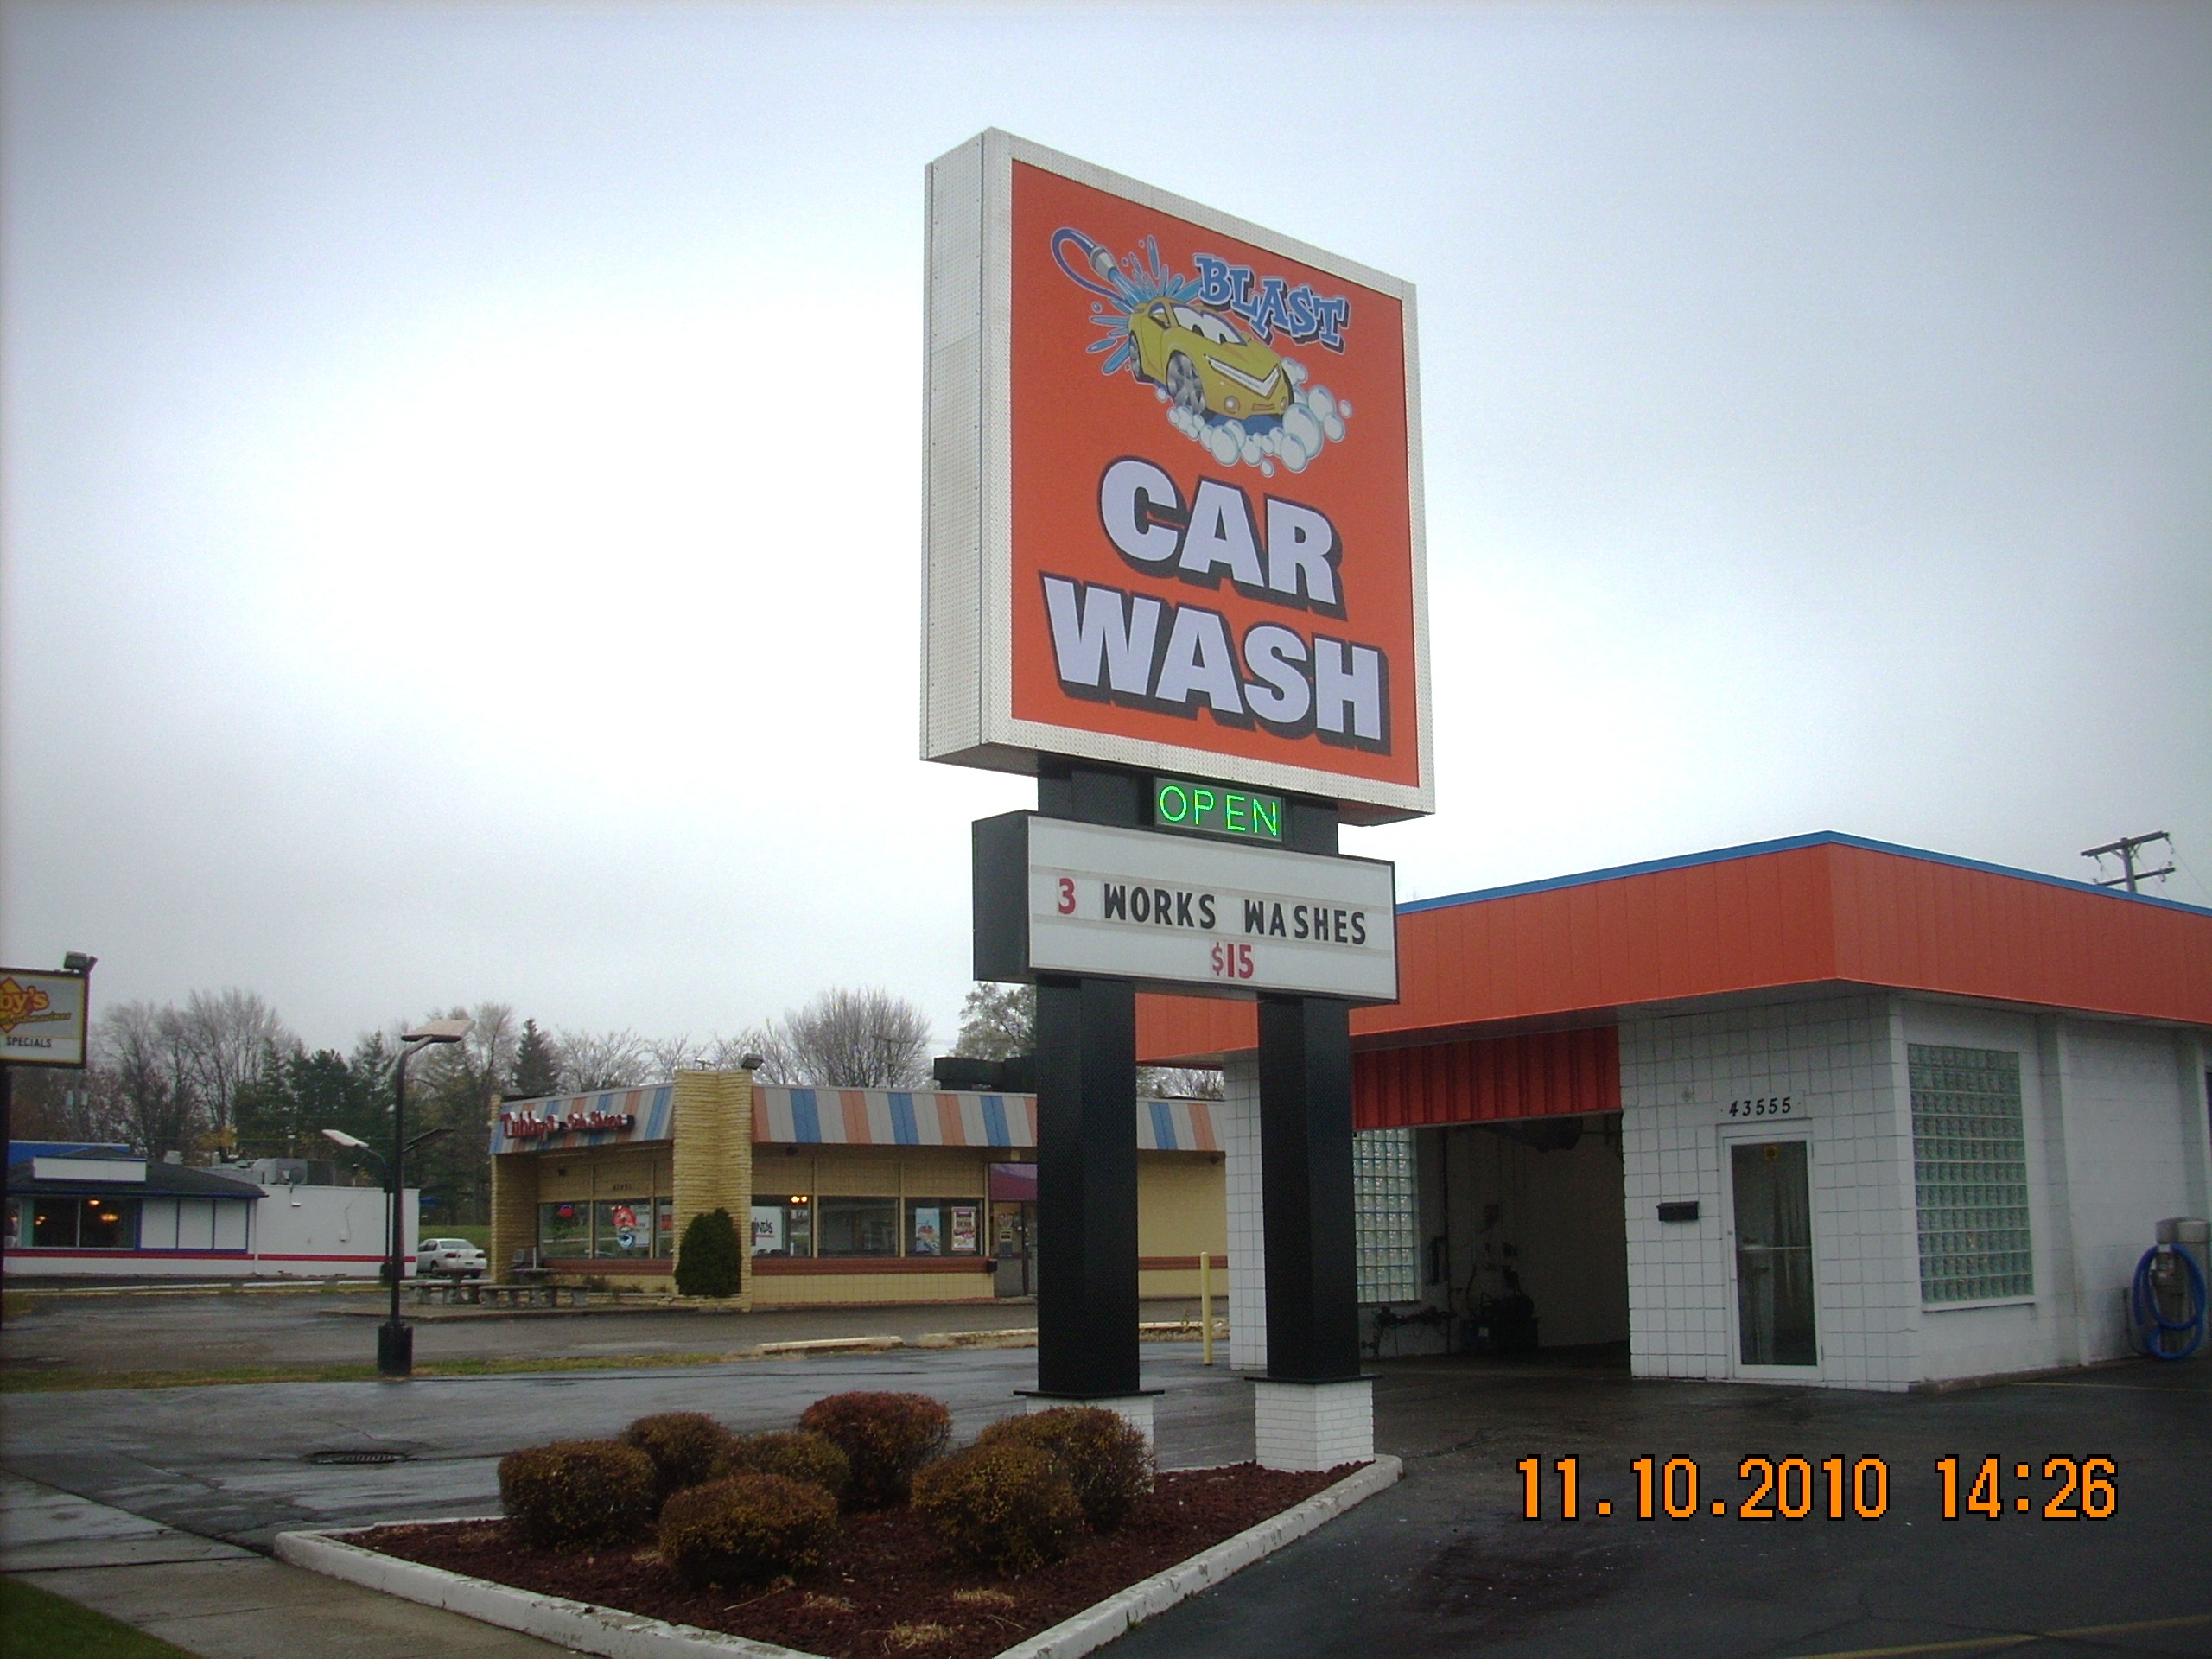 Blast Car Wash Pole Sign